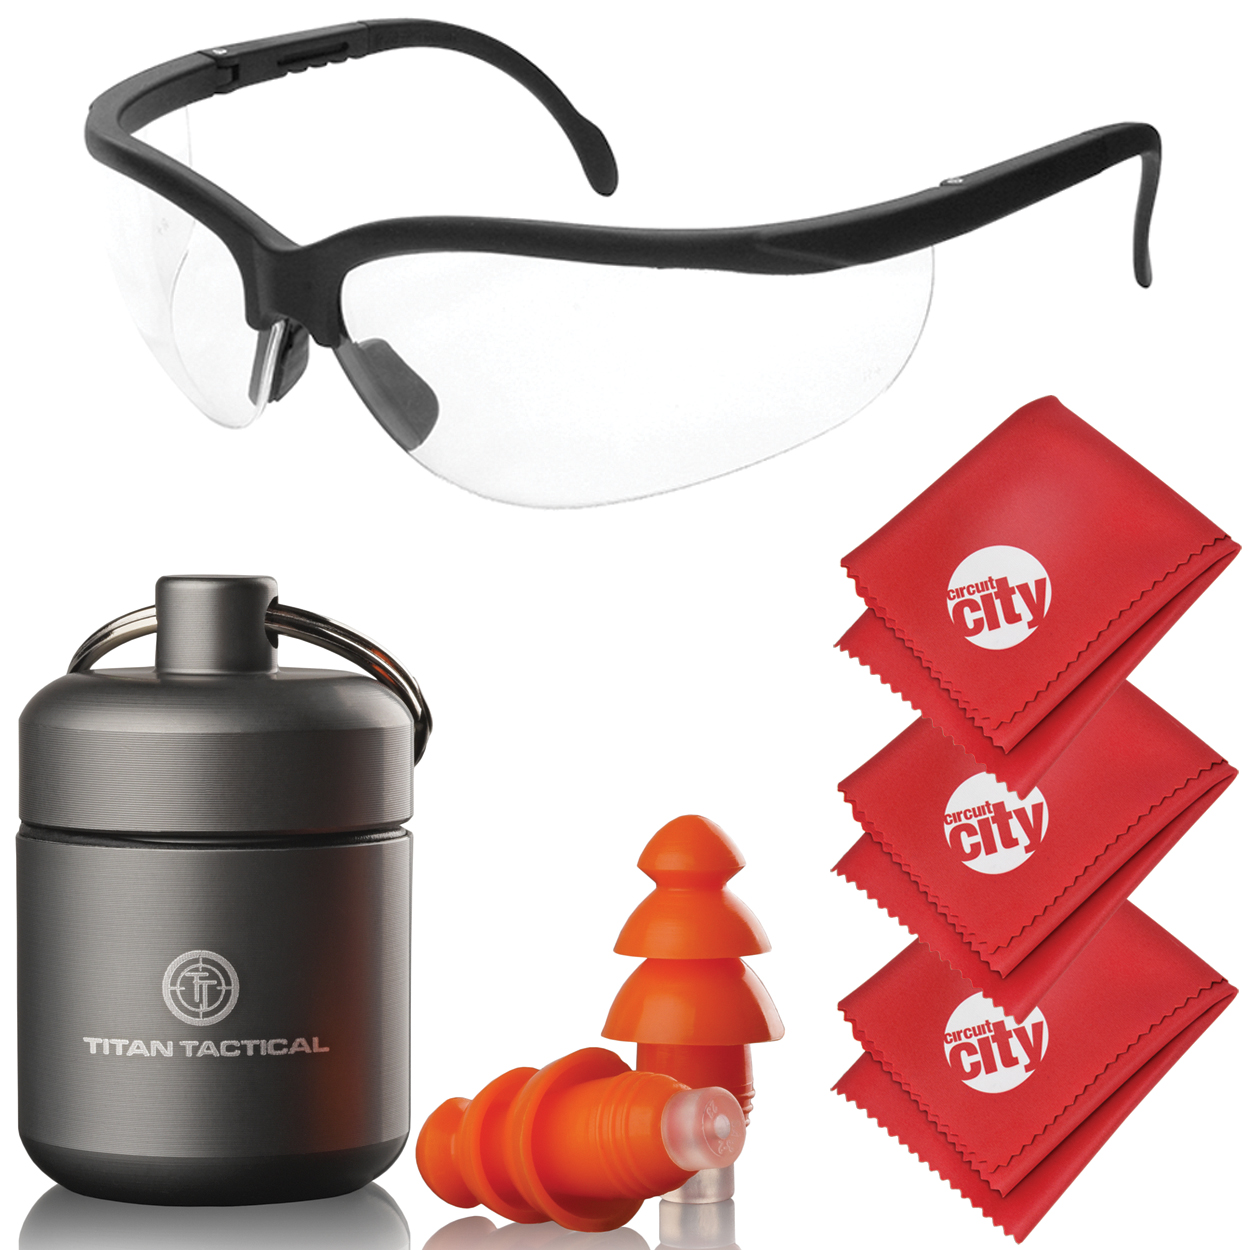 Titan Tactical Eyes + Ear Protection Kit w/ 29NRR Reusable Shooting Ear Plugs + Mil-Spec Clear Range Ballistic Glasses (for Normal + Small Ear Canals)